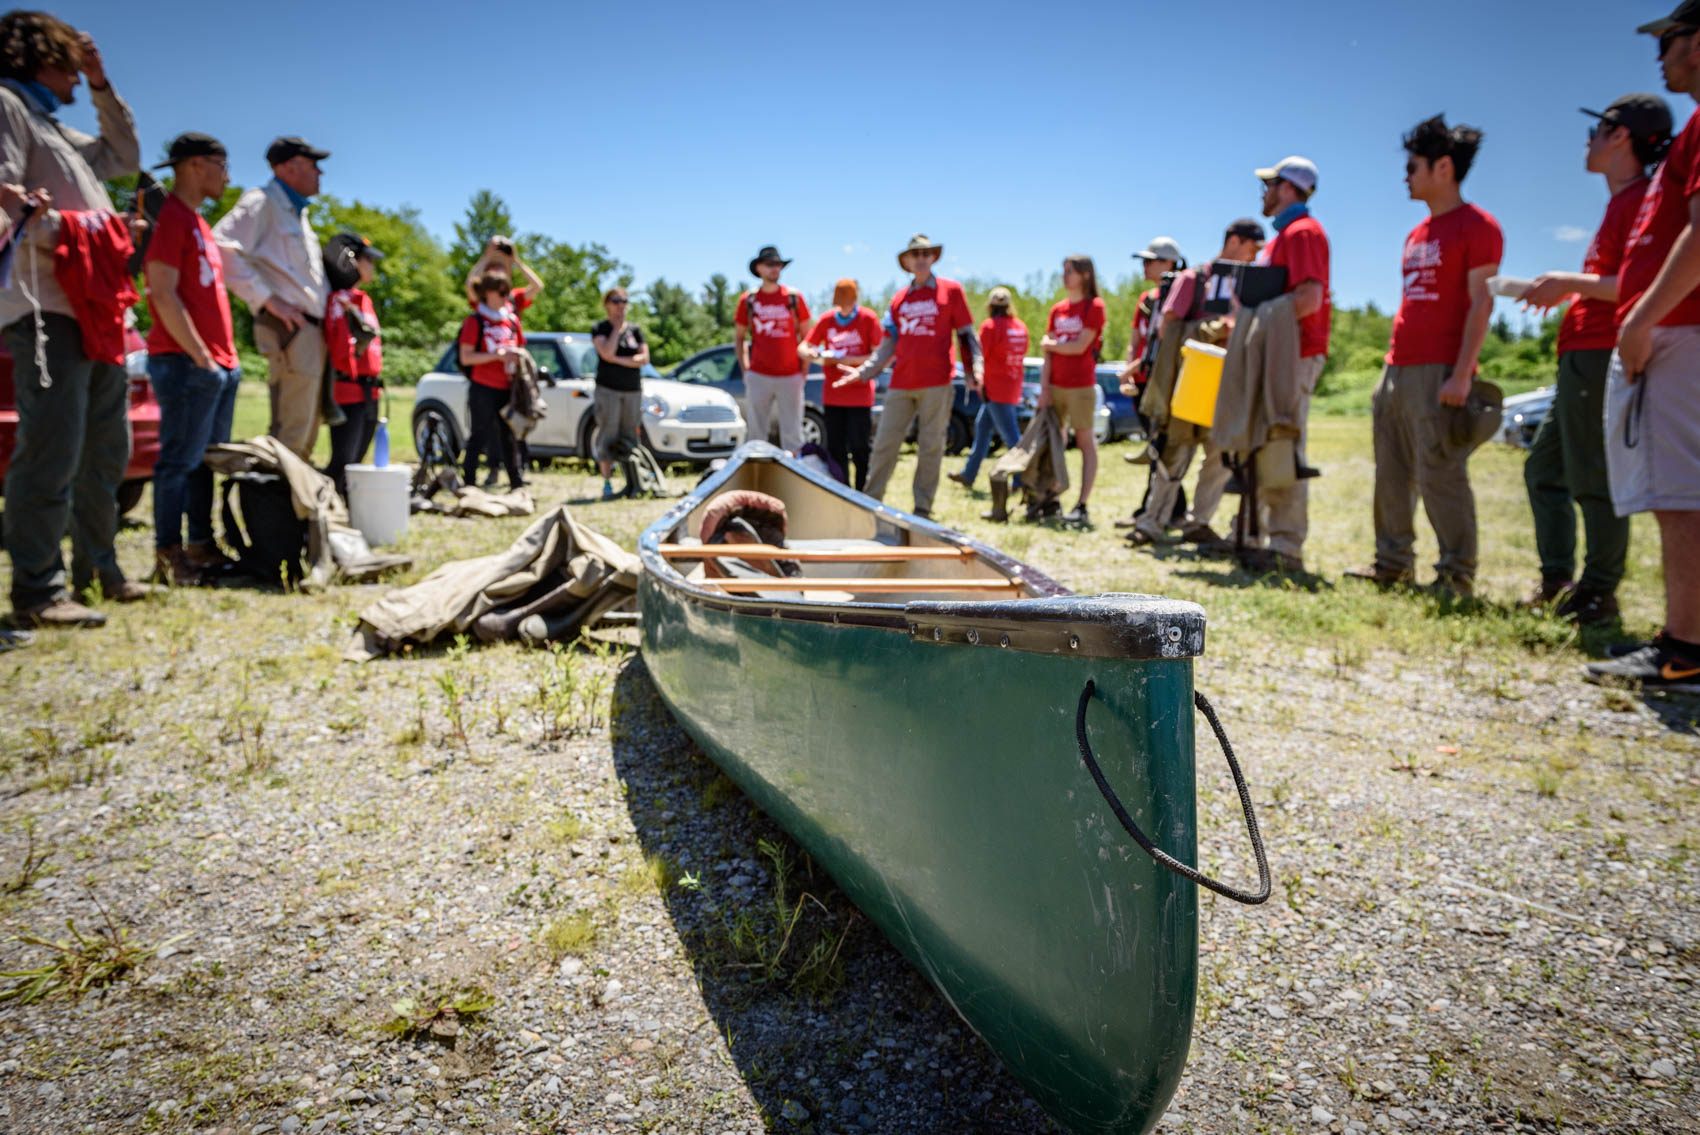 A group of BioBlitz participants surround a canoe at Rough Park